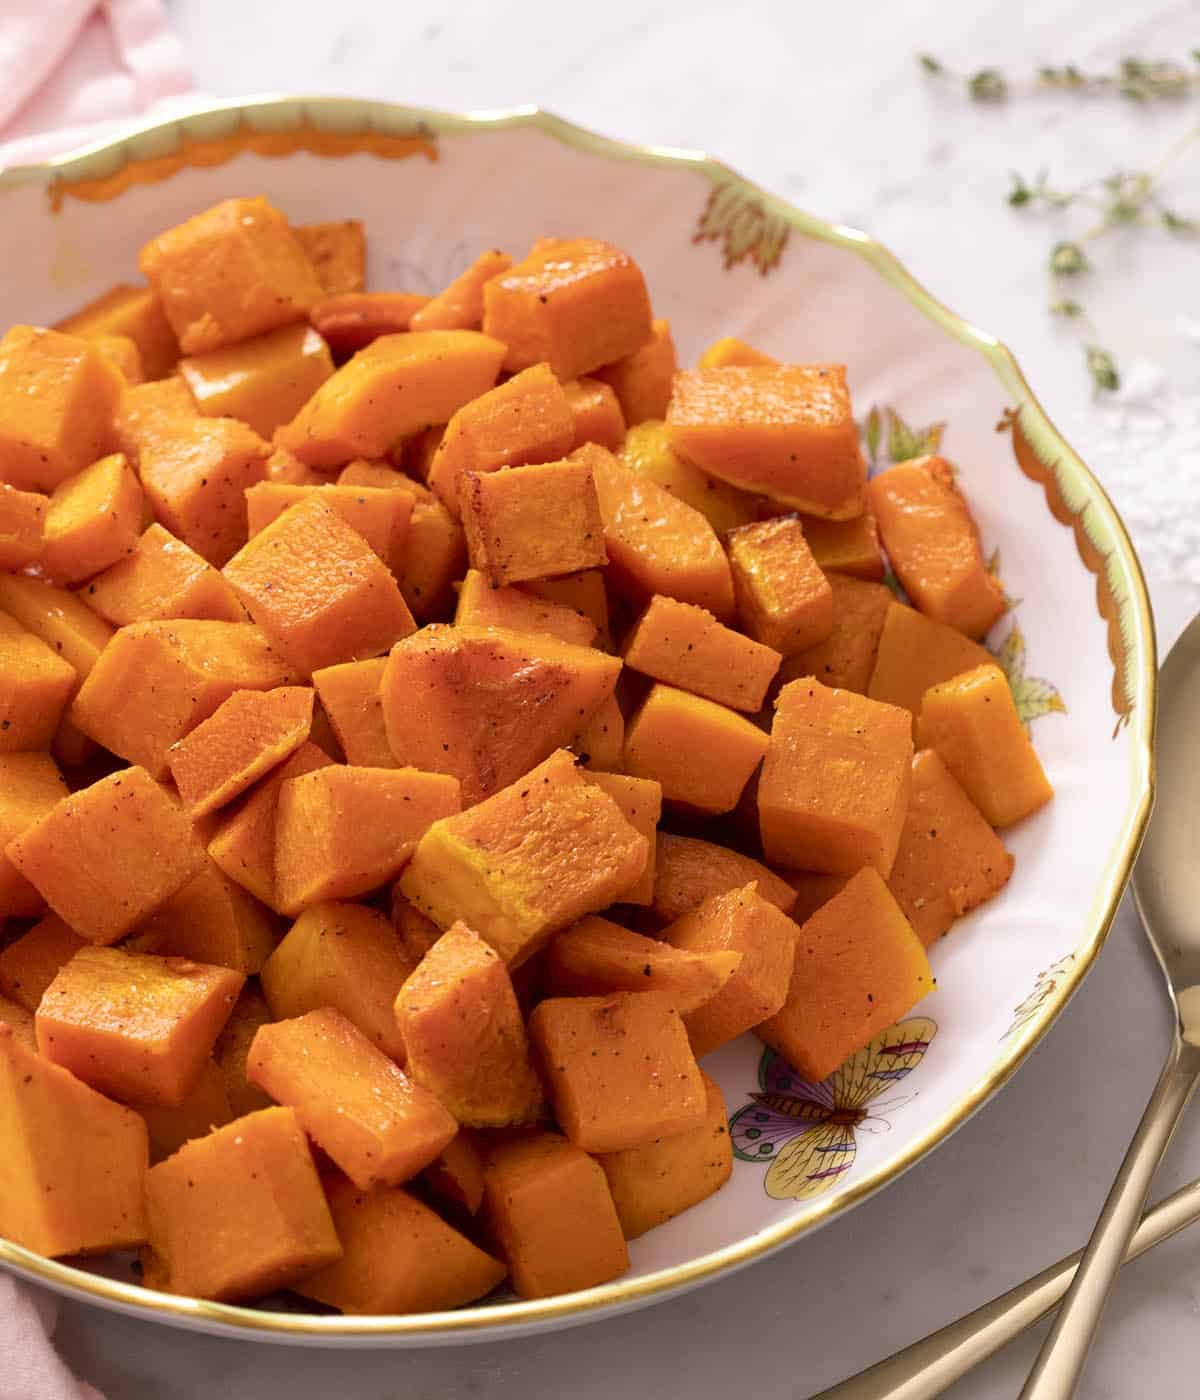 A round porcelain serving bowl filled with roasted butternut squash.